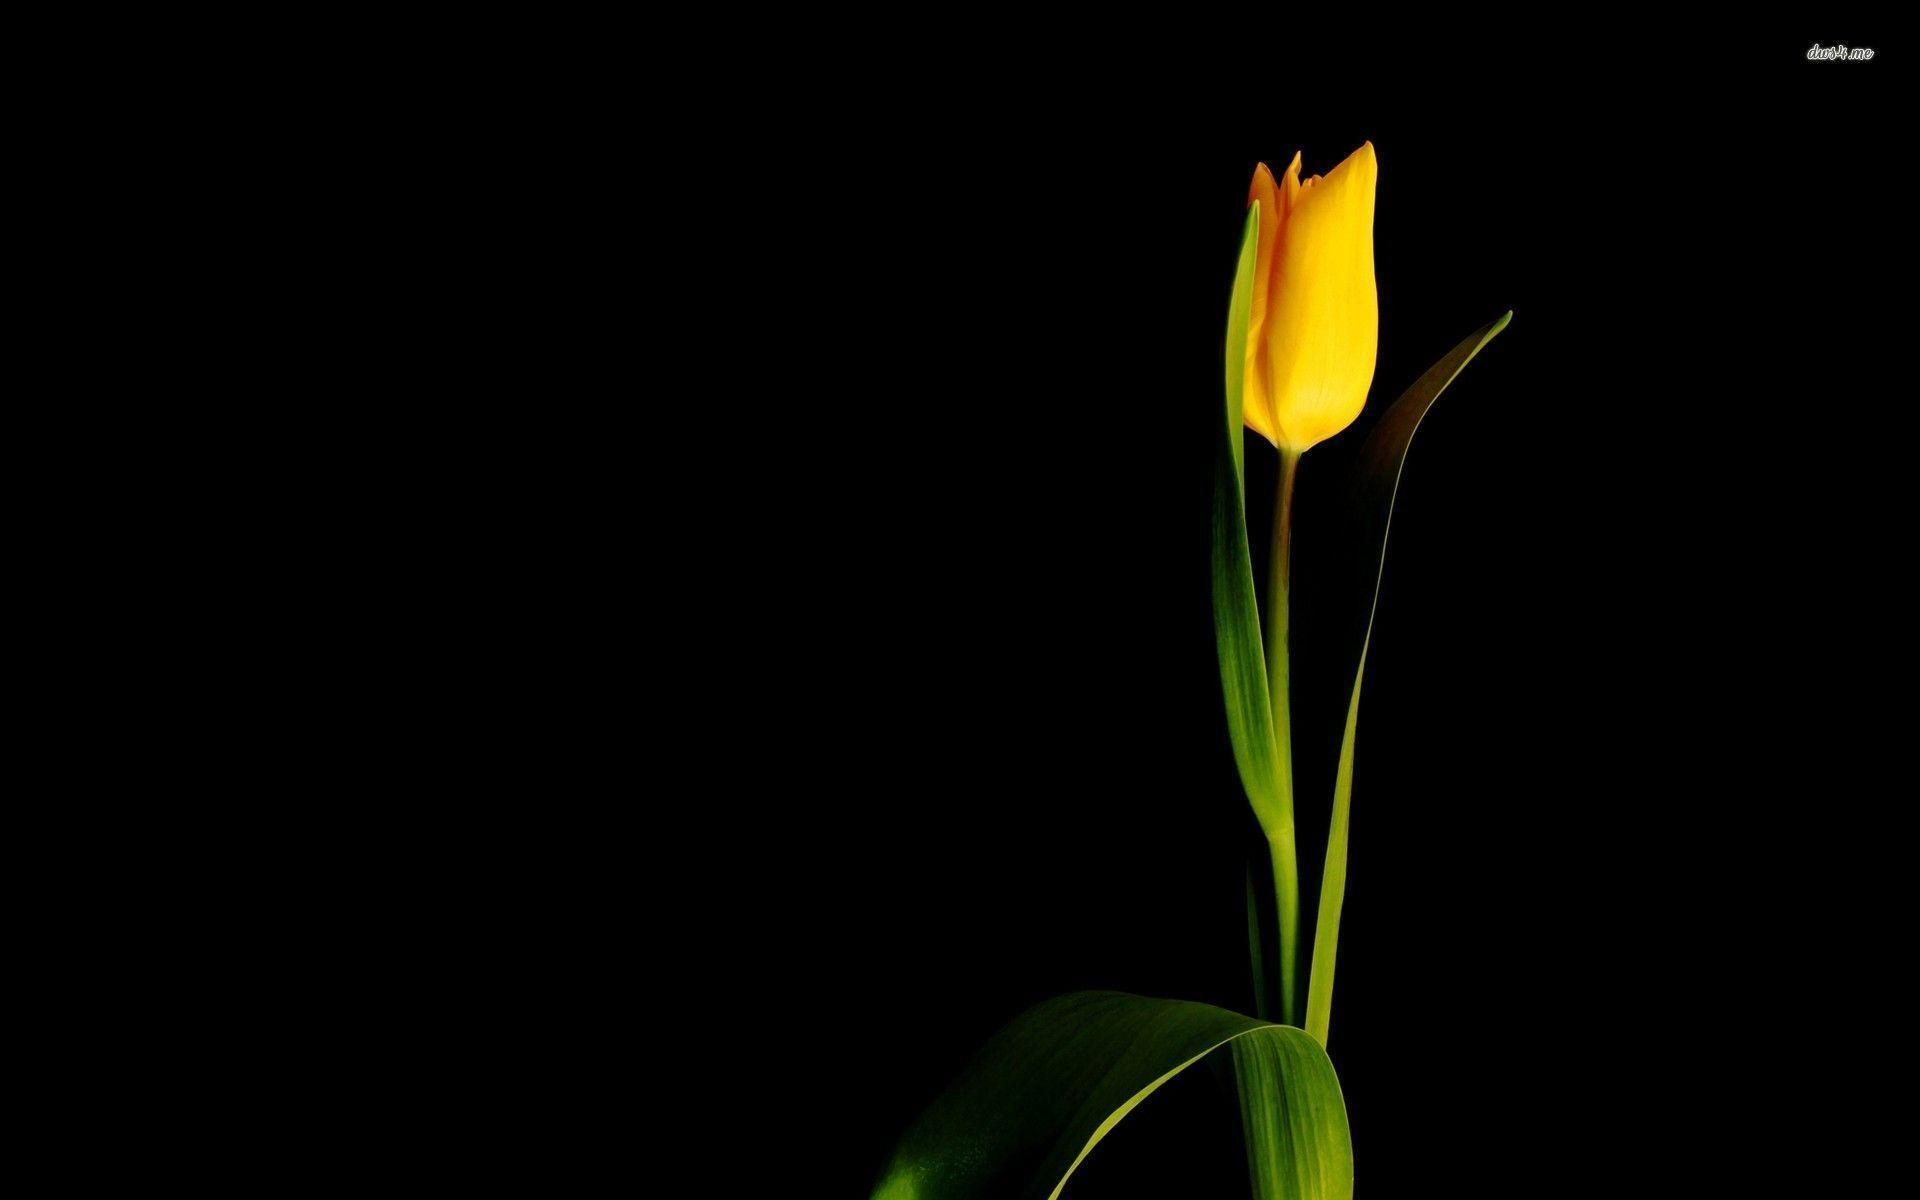 Single Flower Wallpapers - Wallpaper Cave